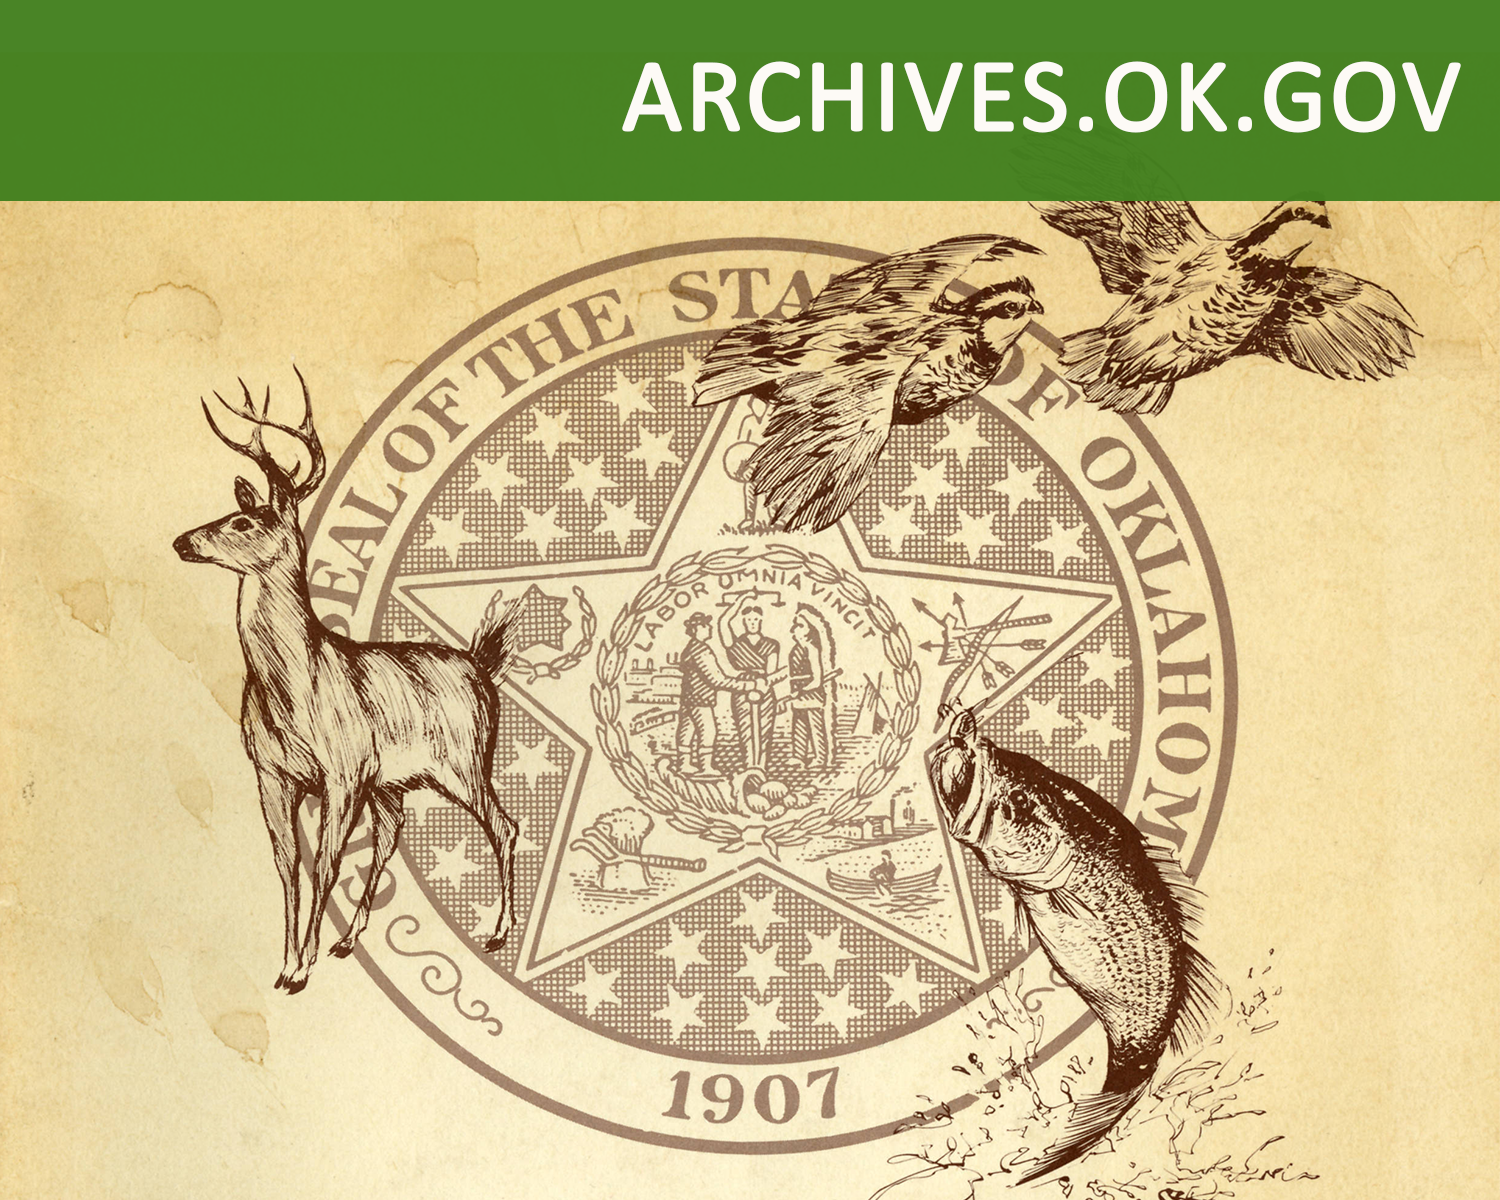 View online archives